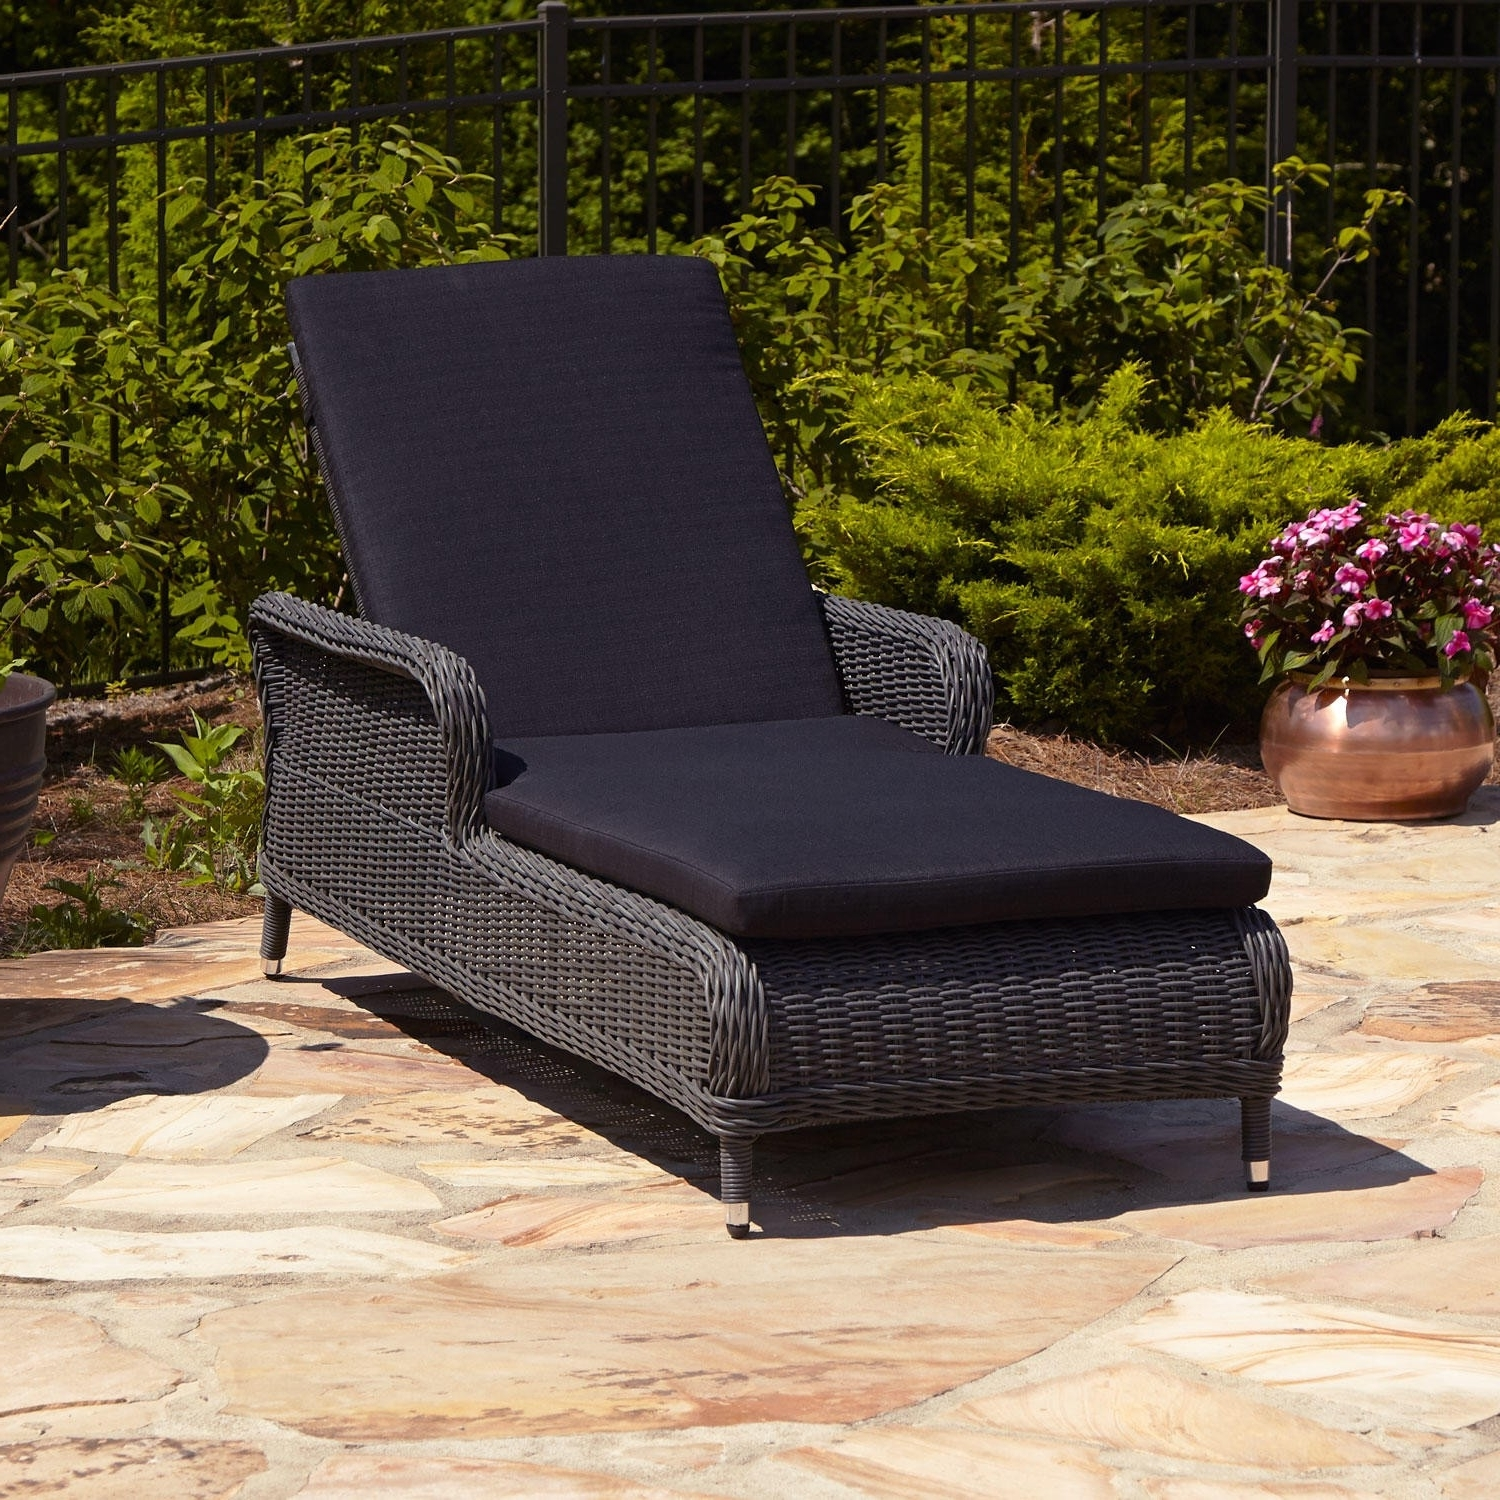 Outdoor Wicker Chaise Lounges Intended For Popular Remarkable Wicker Chaise Lounge Chair Gray Patio Furniture All (View 7 of 15)